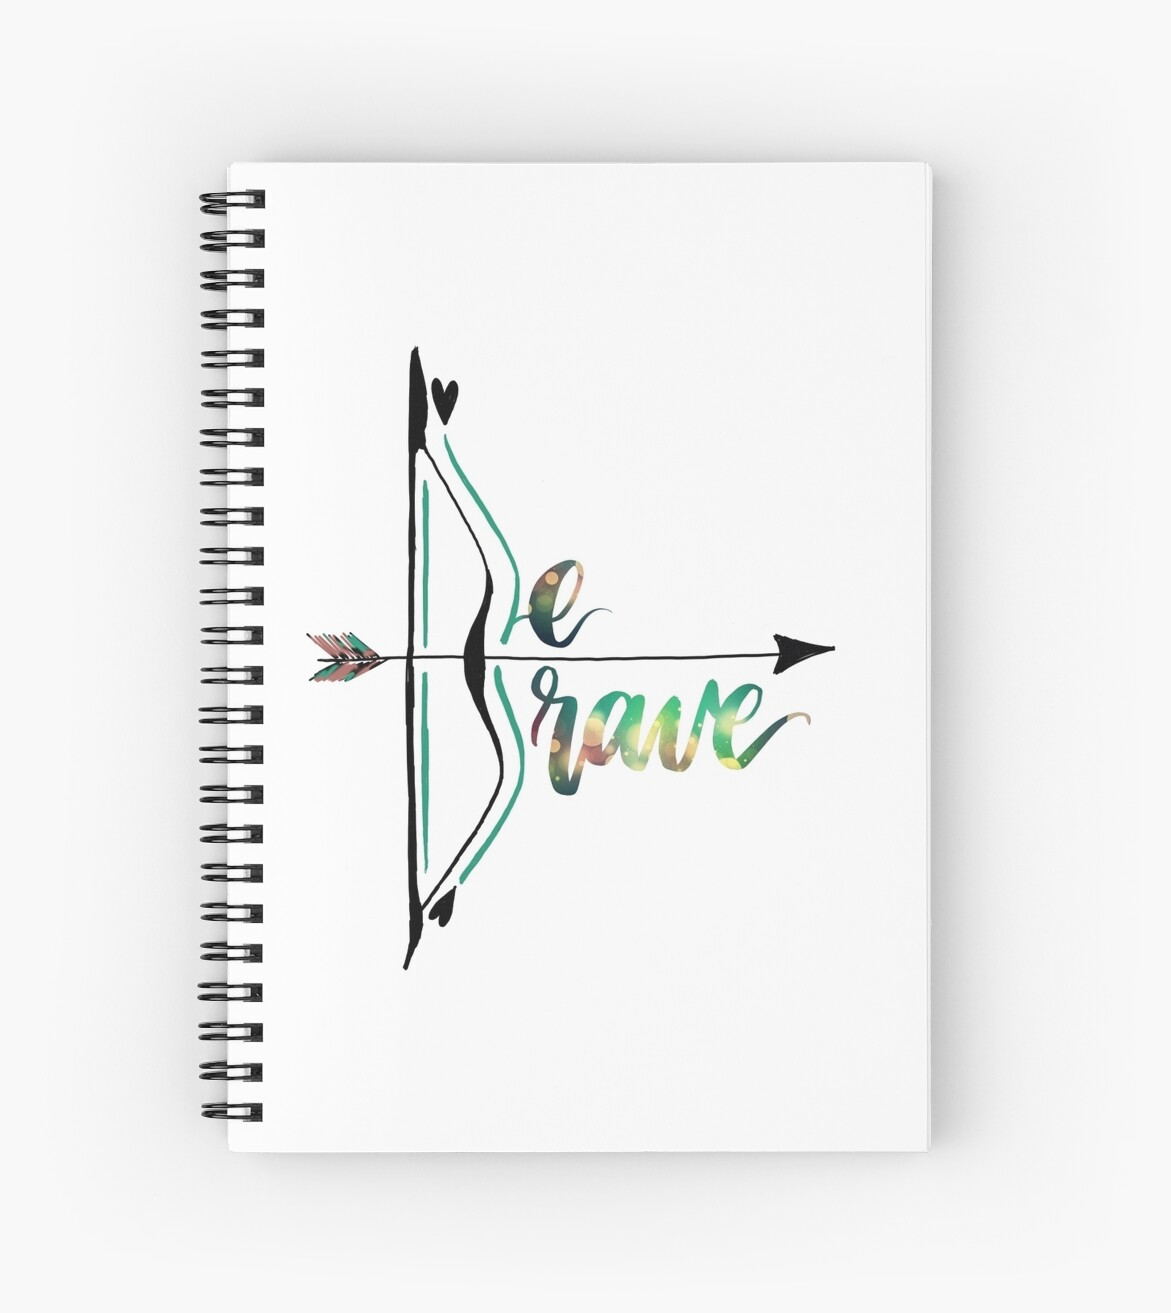 Be Brave With Bow and Arrow by Myda Muckala